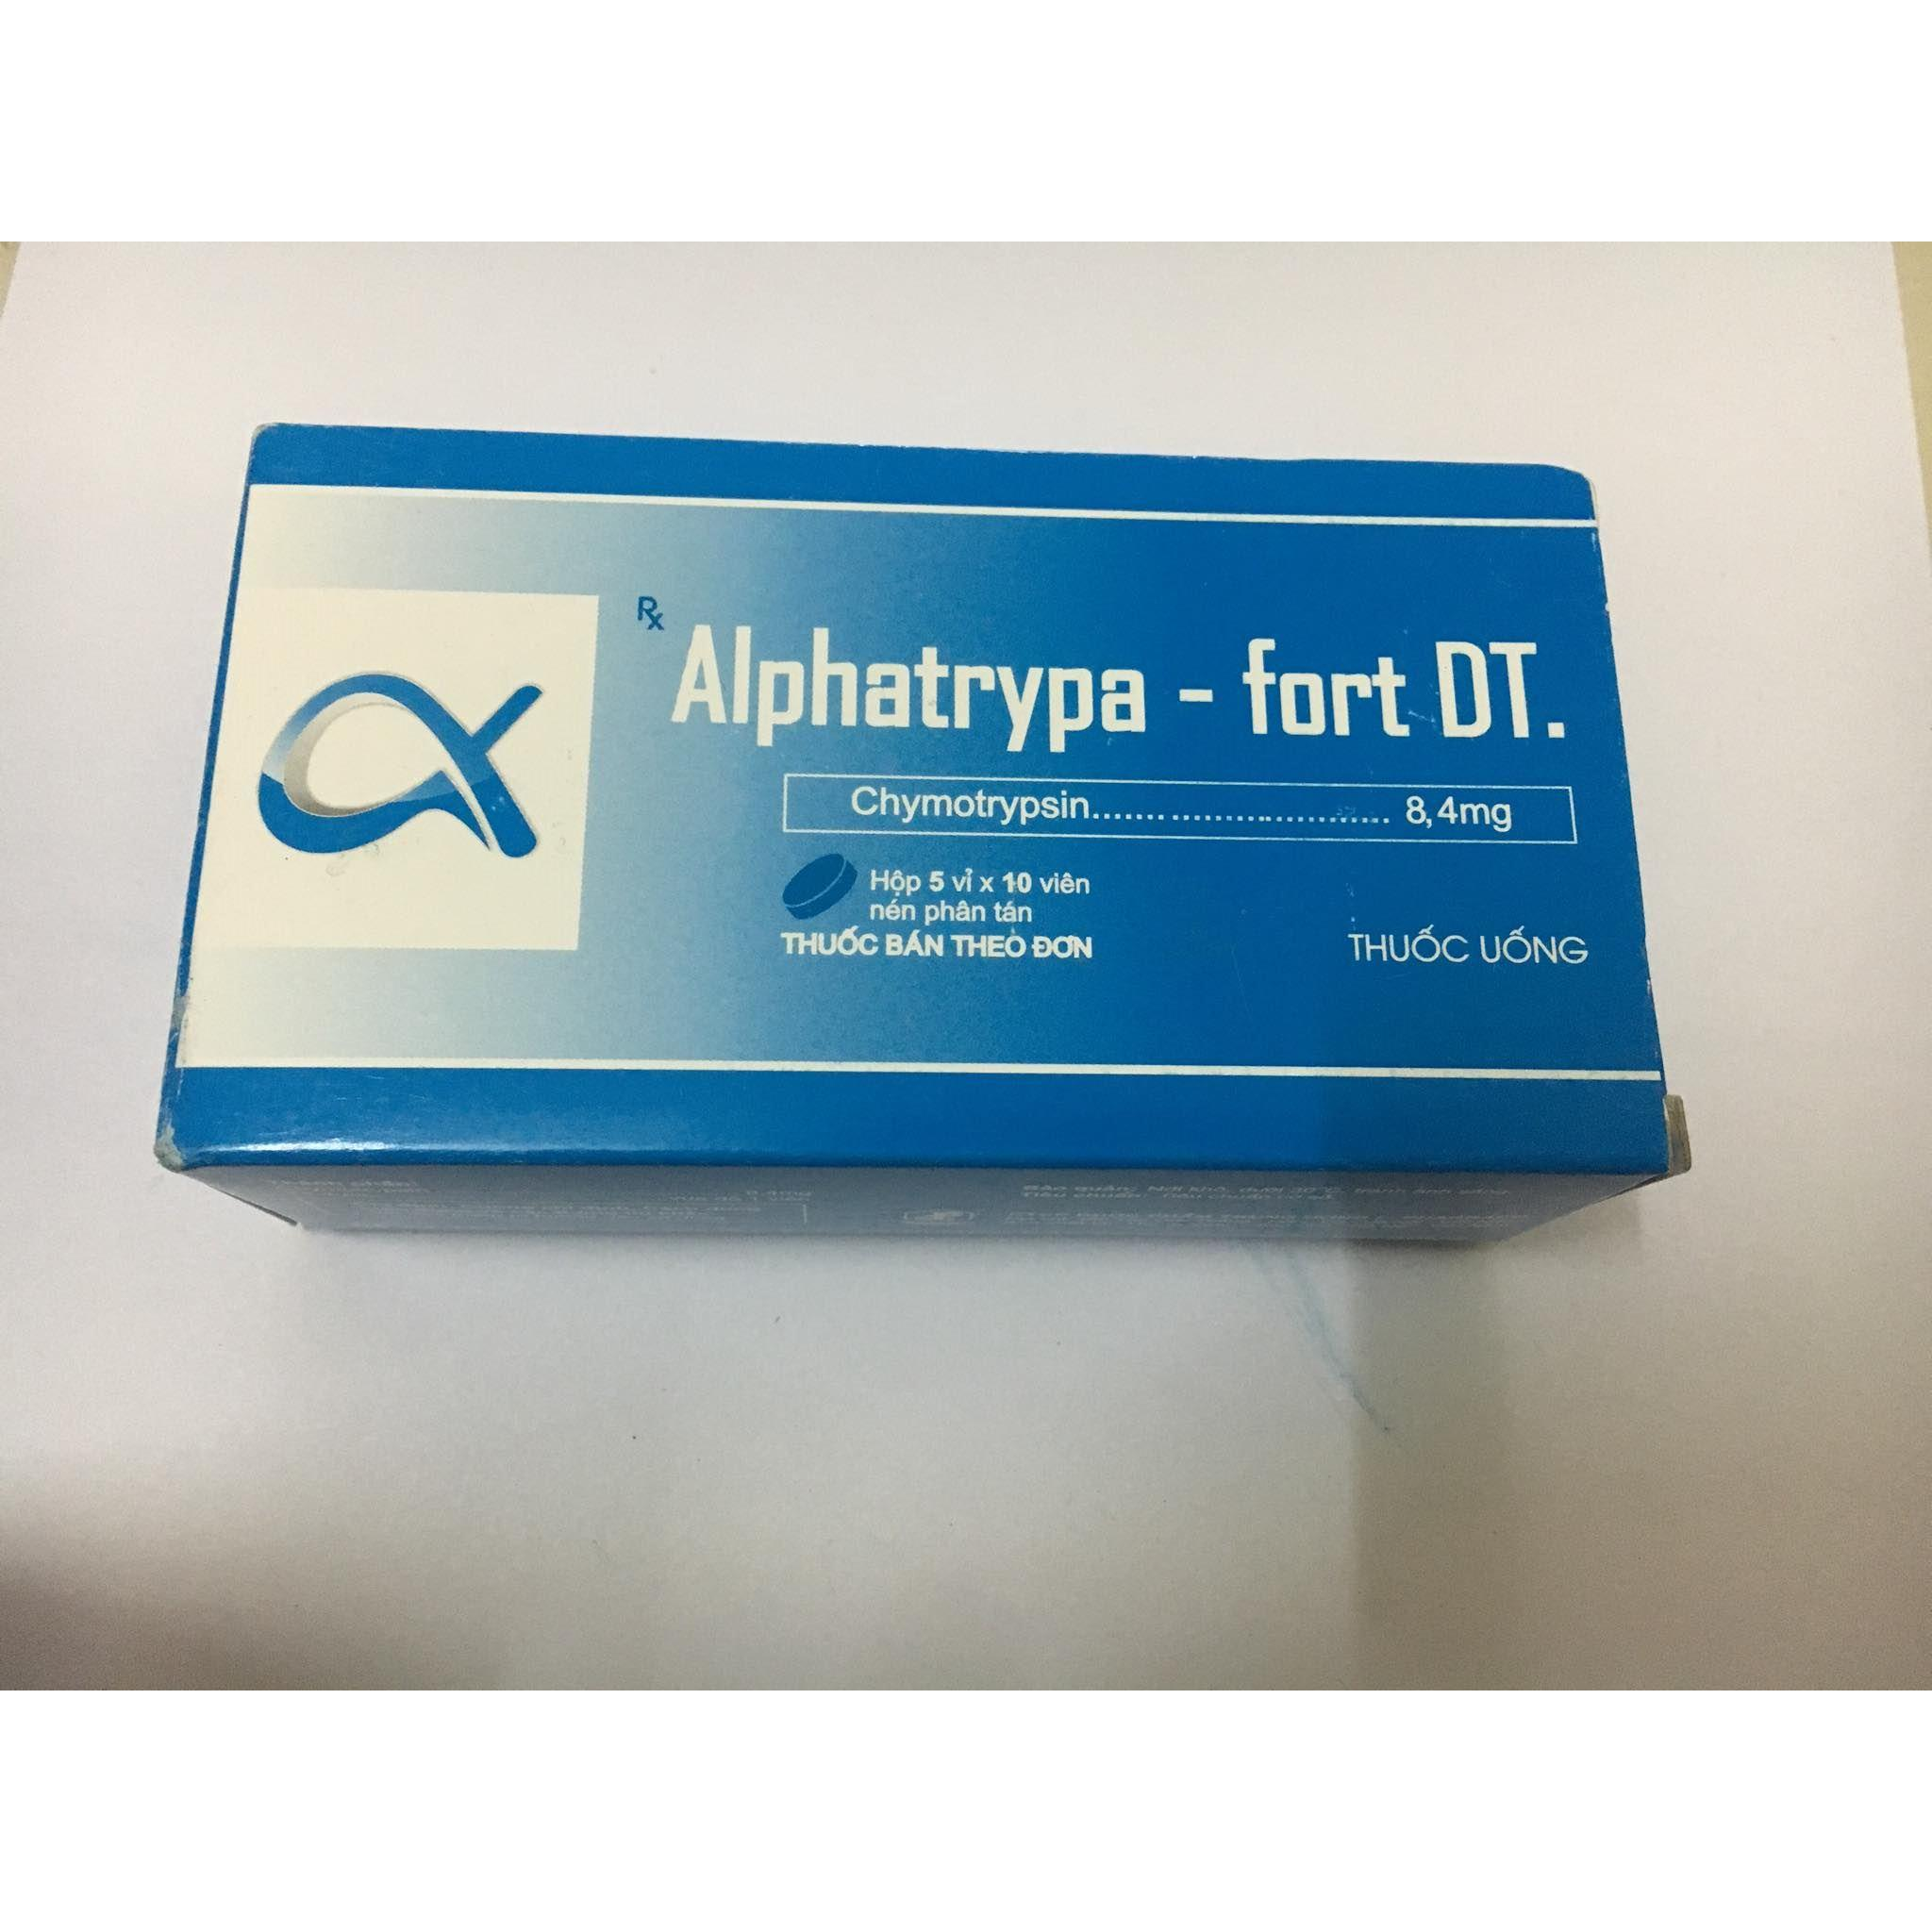 Alphatrypa-fort DT